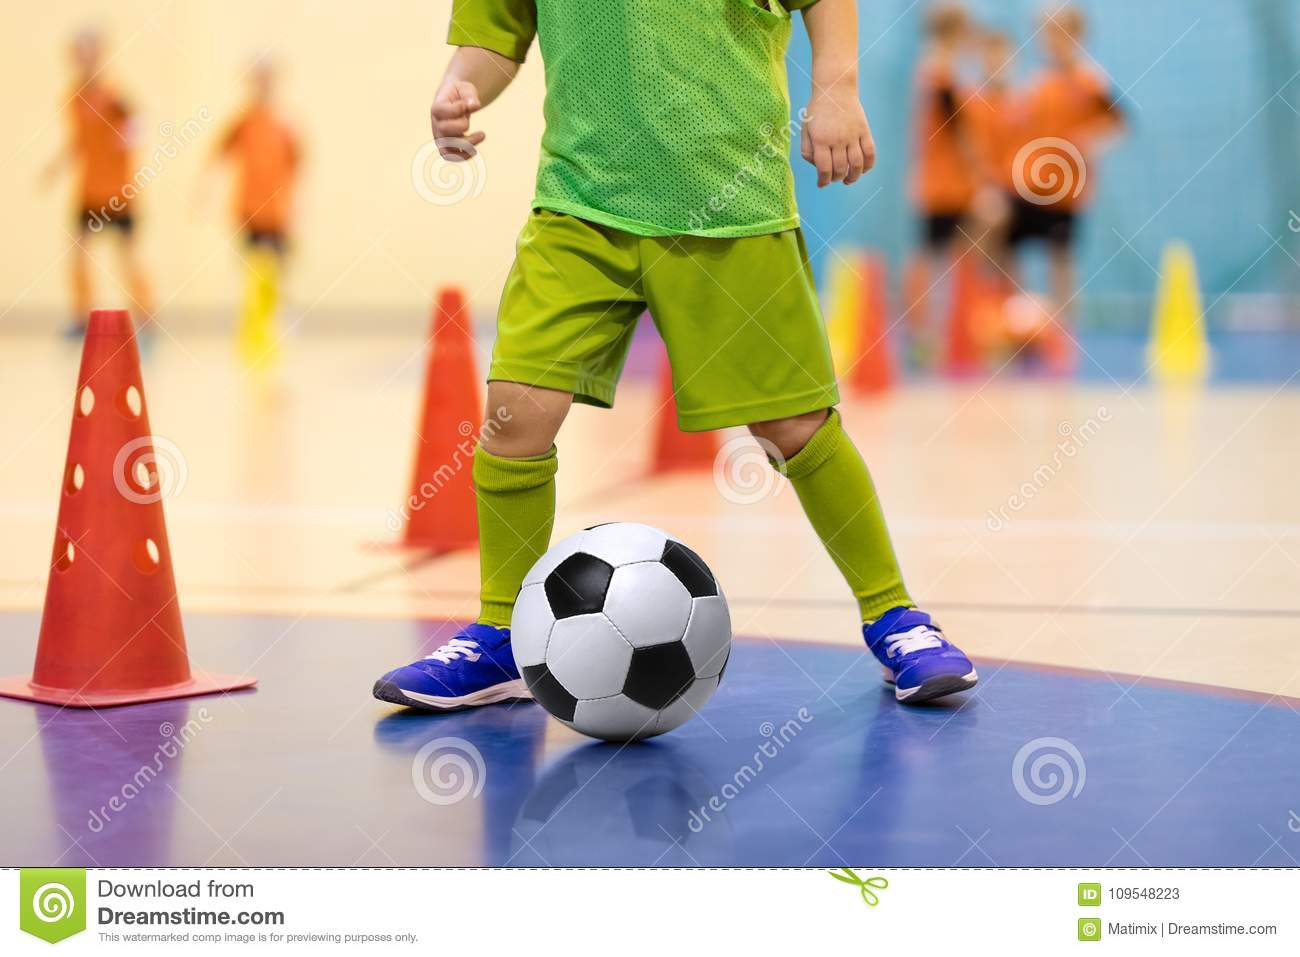 29d49a791 Football futsal training for children. Soccer training dribbling cone  drill. Indoor soccer young player with a soccer ball in a sports hall.